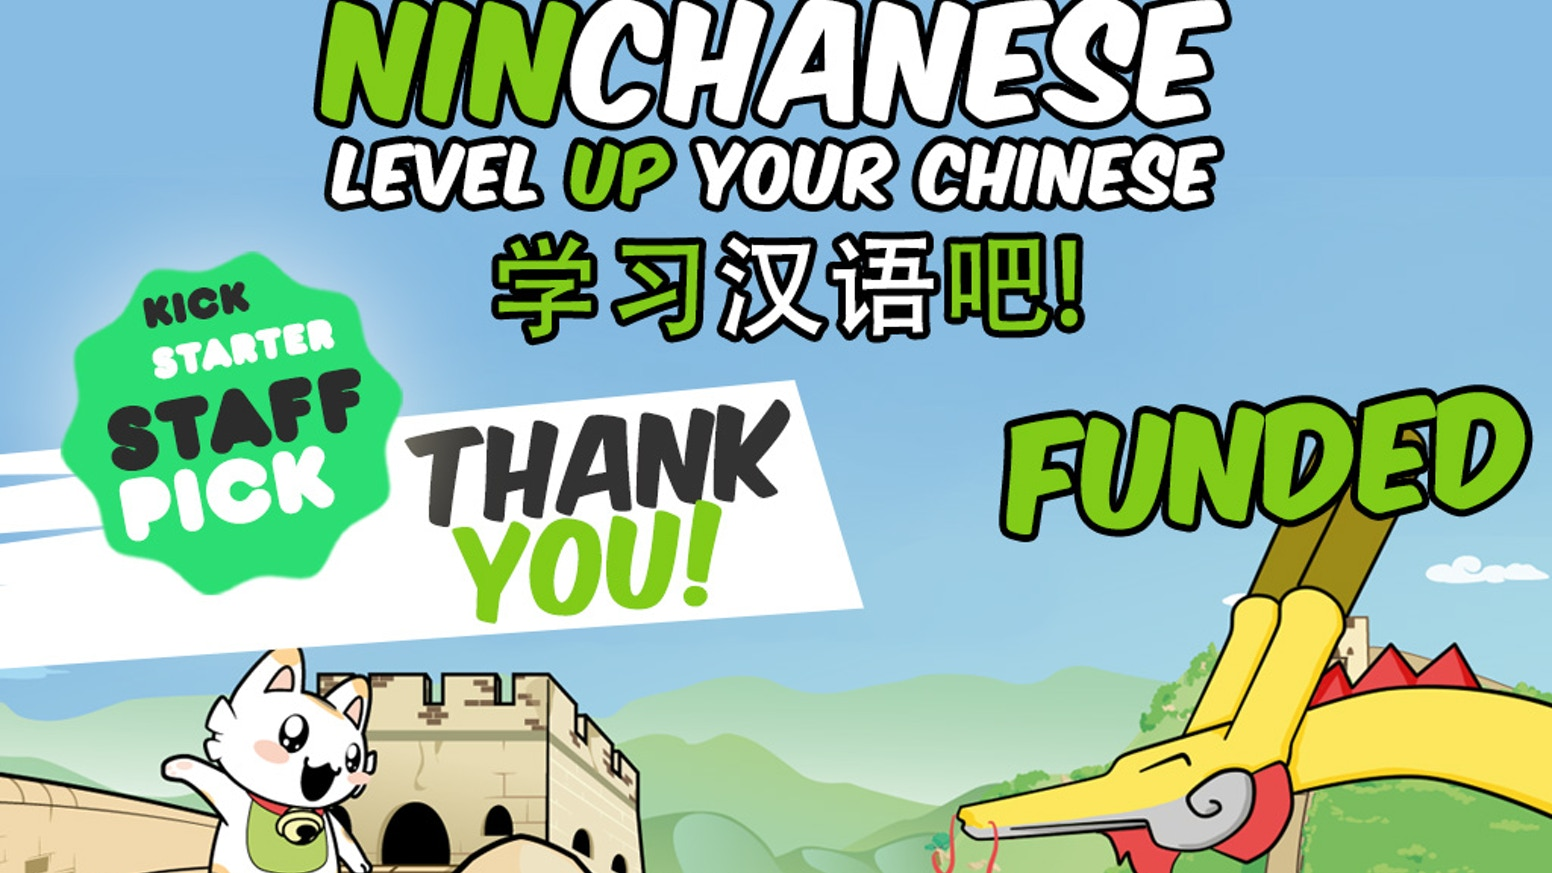 Ninchanese harnesses the power of games to make learning Chinese fun and effective.